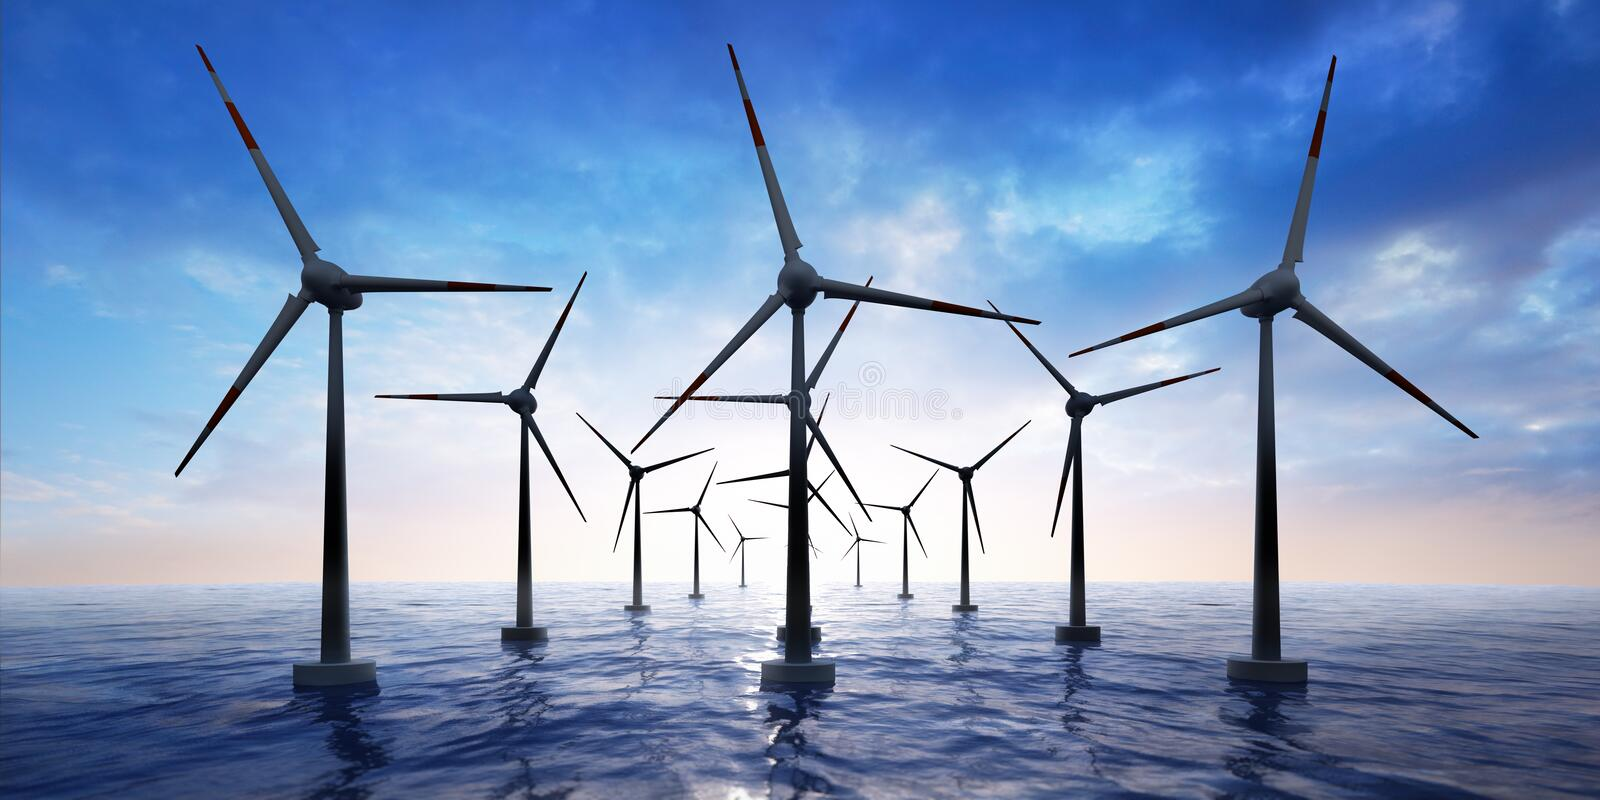 Wind farm in the ocean at sunset stock illustration